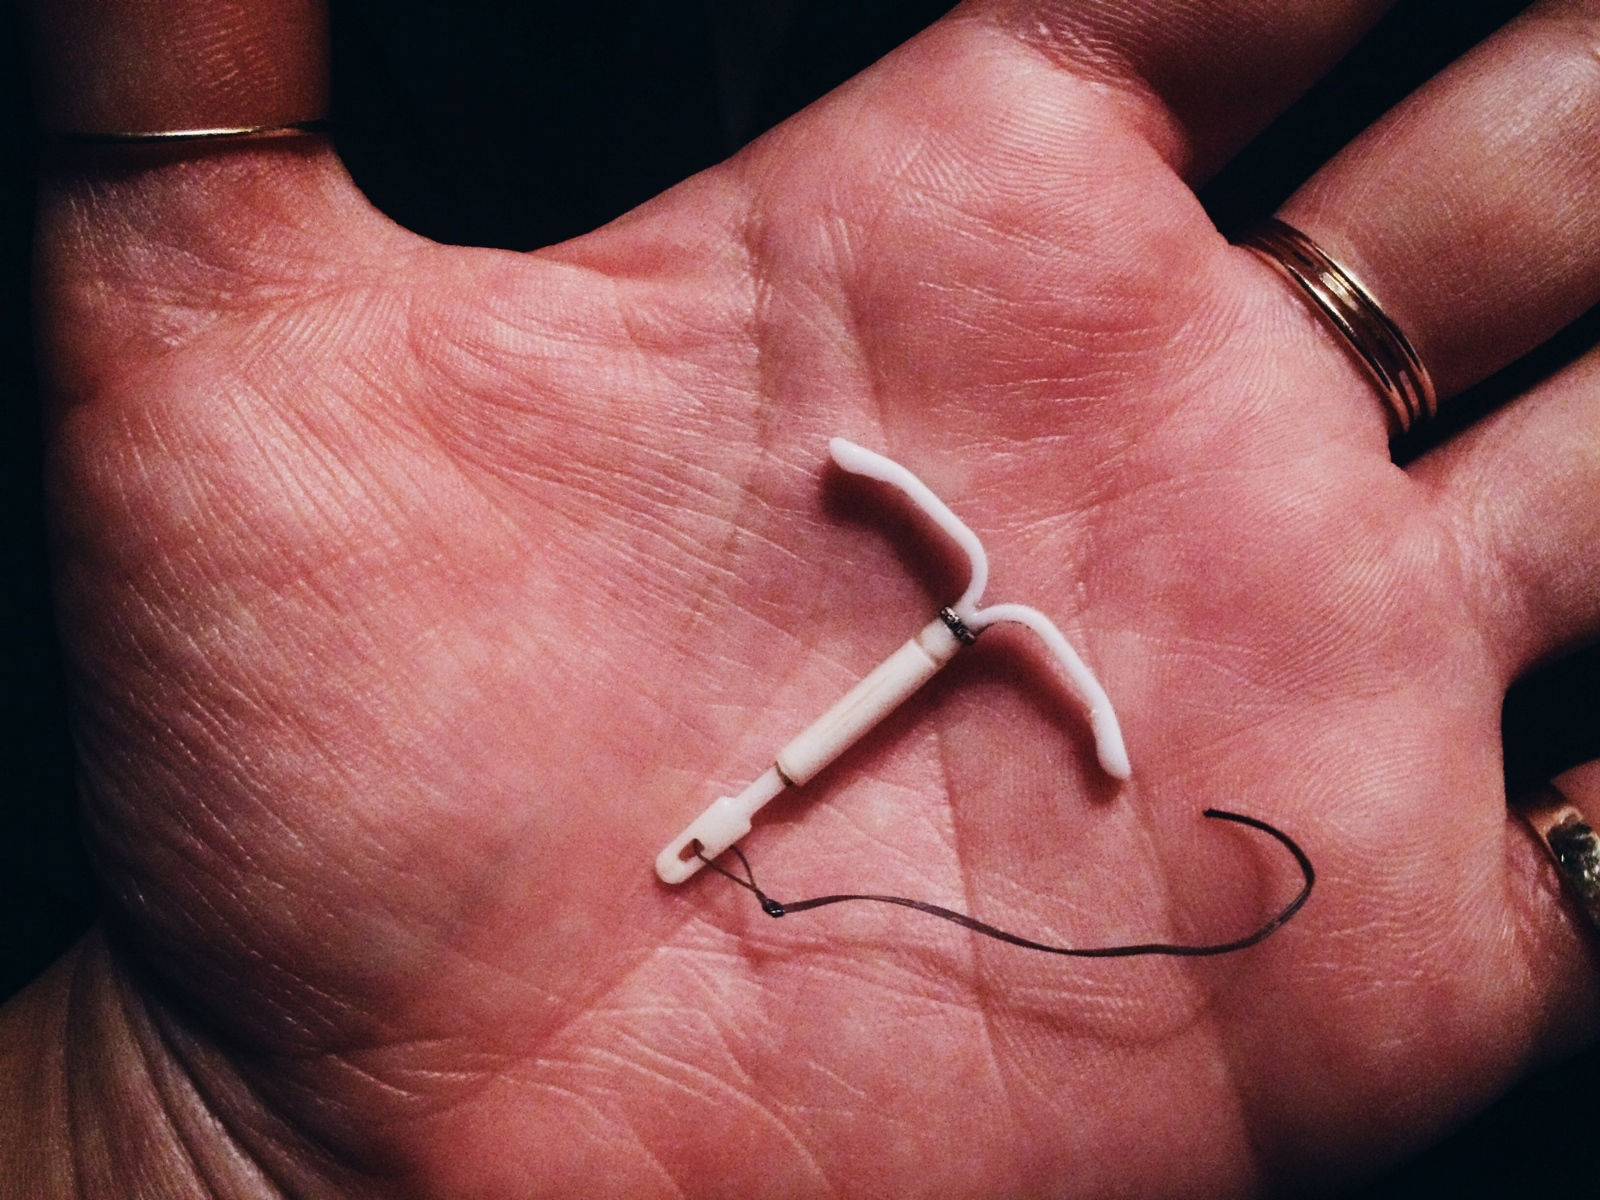 Britain offers 22 types of IUDs in different shapes and sizes to accomodate variations in womens' anatomy, Canada offers 9, and the US only 5. Under the ACA, women have access to birth control and other preventative reproductive health services with no copay. Without this policy, IUDs could cost women up to $1000 out of pocket.